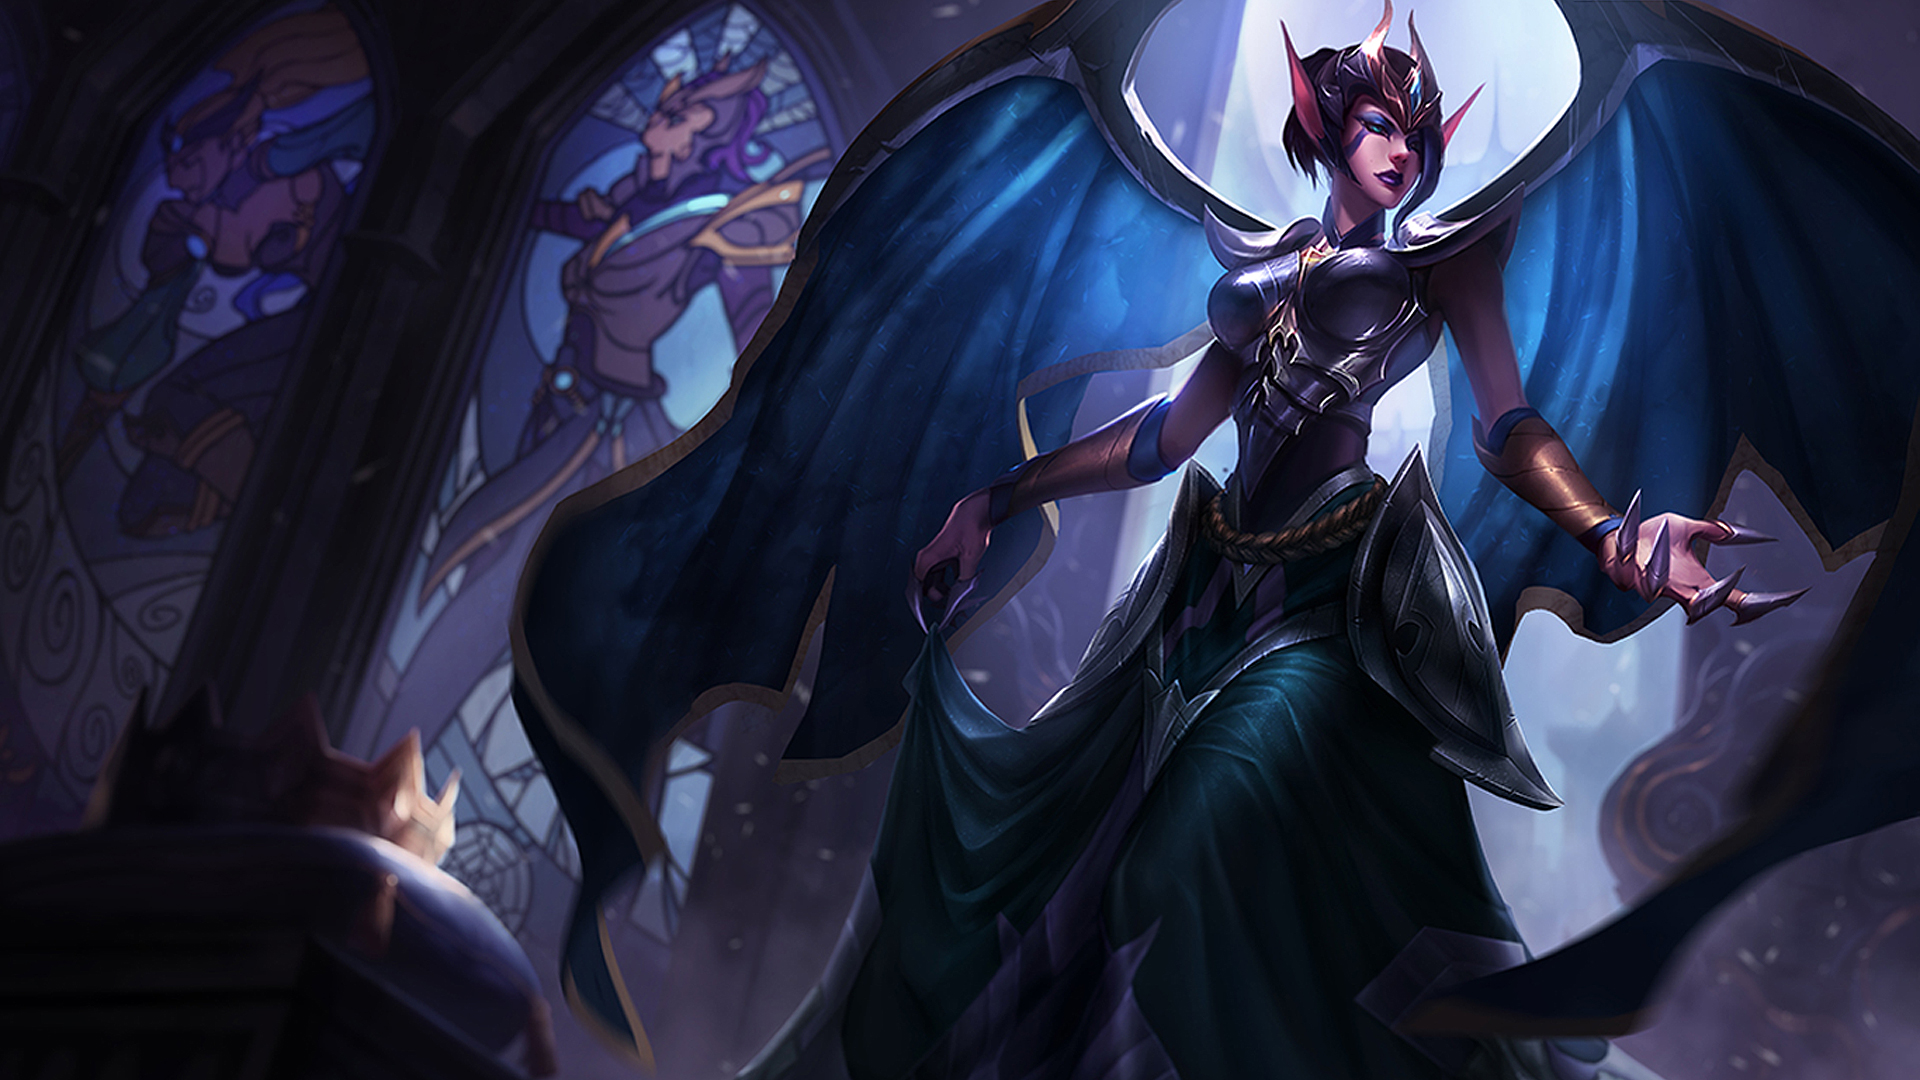 Victorious Morgana - League of Legends Wallpapers